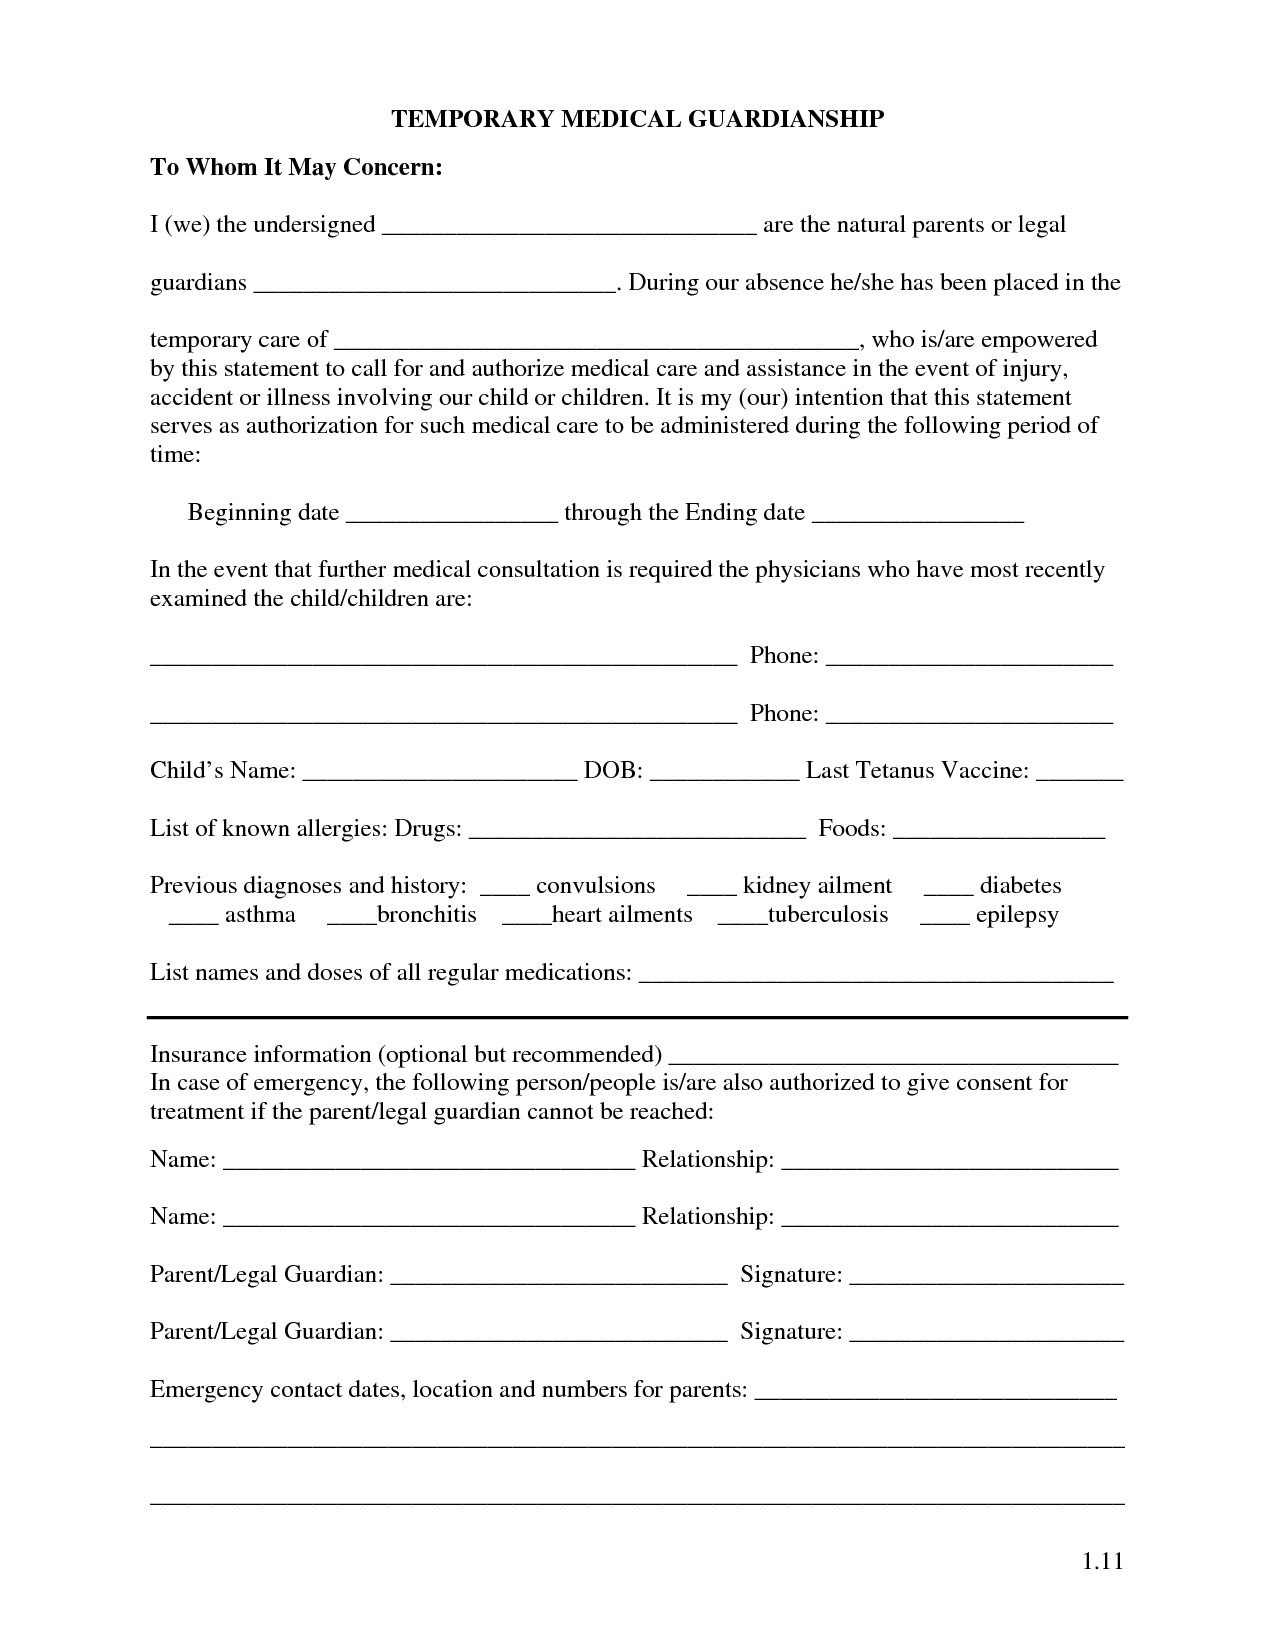 Free Printable Temporary Guardianship Forms | Forms | Child Custody - Free Printable Child Custody Forms